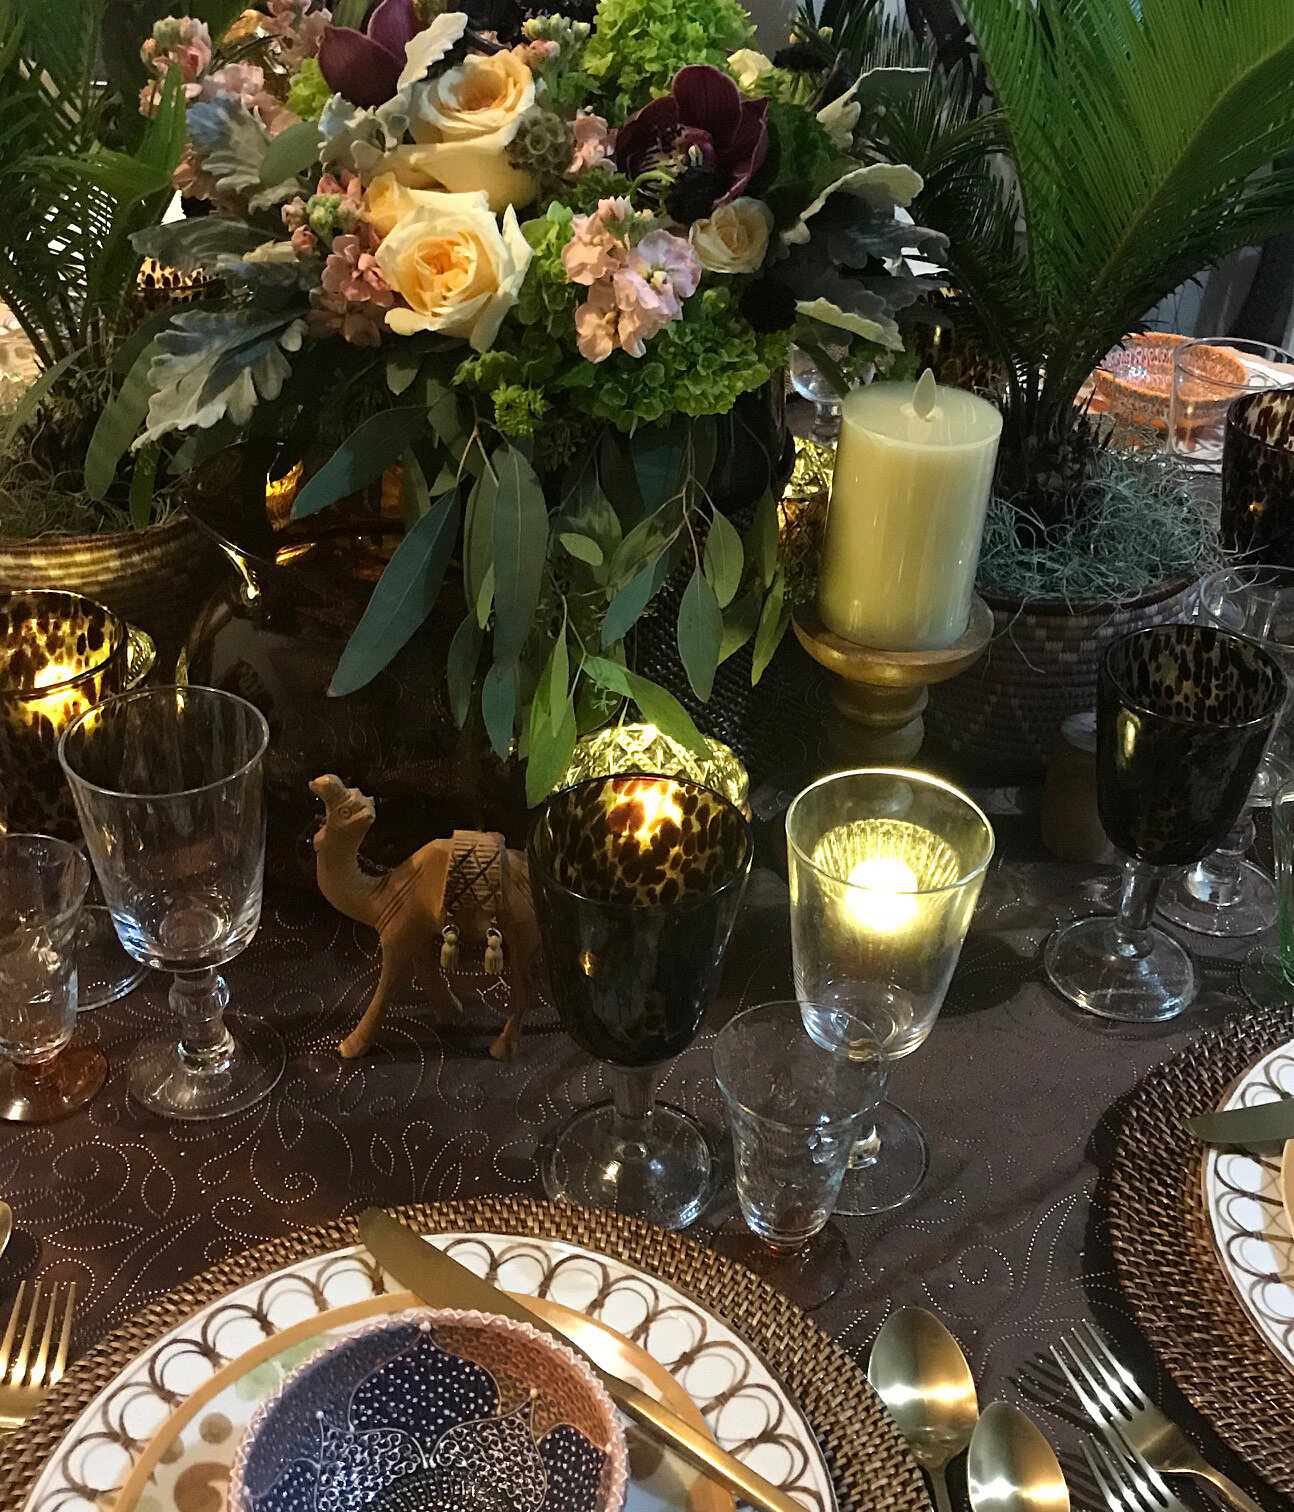 """""""Spicy Moroccan Nights"""" Dark Chocolate tablecloth makes the pastels pop. I love the swirling design in the tablecloth. The layering of textures and colour is subtle and sweet. Who let in that camel?!"""